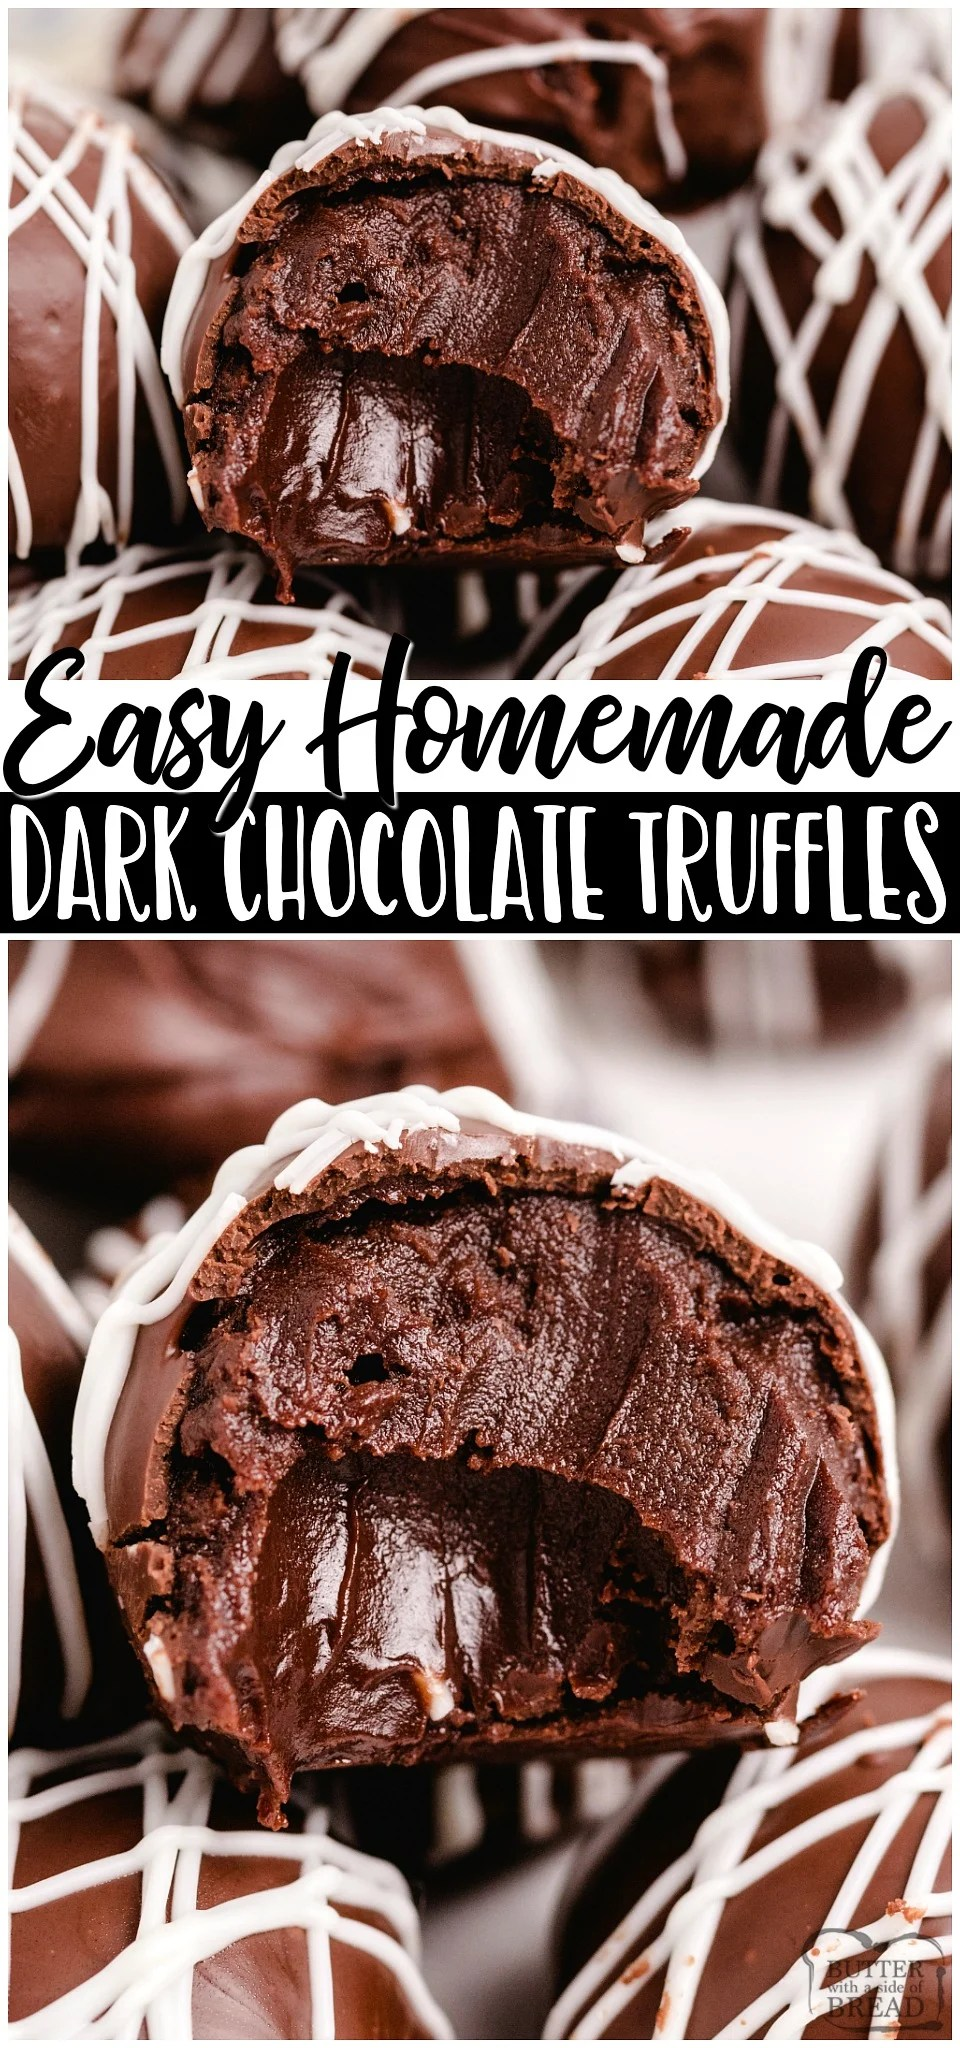 Homemade Dark chocolate Truffles made with just 5 ingredients and SO amazing! Chocolate chips, heavy cream and butter combine for a rich & smooth luscious chocolate truffle filling you make easily at home!